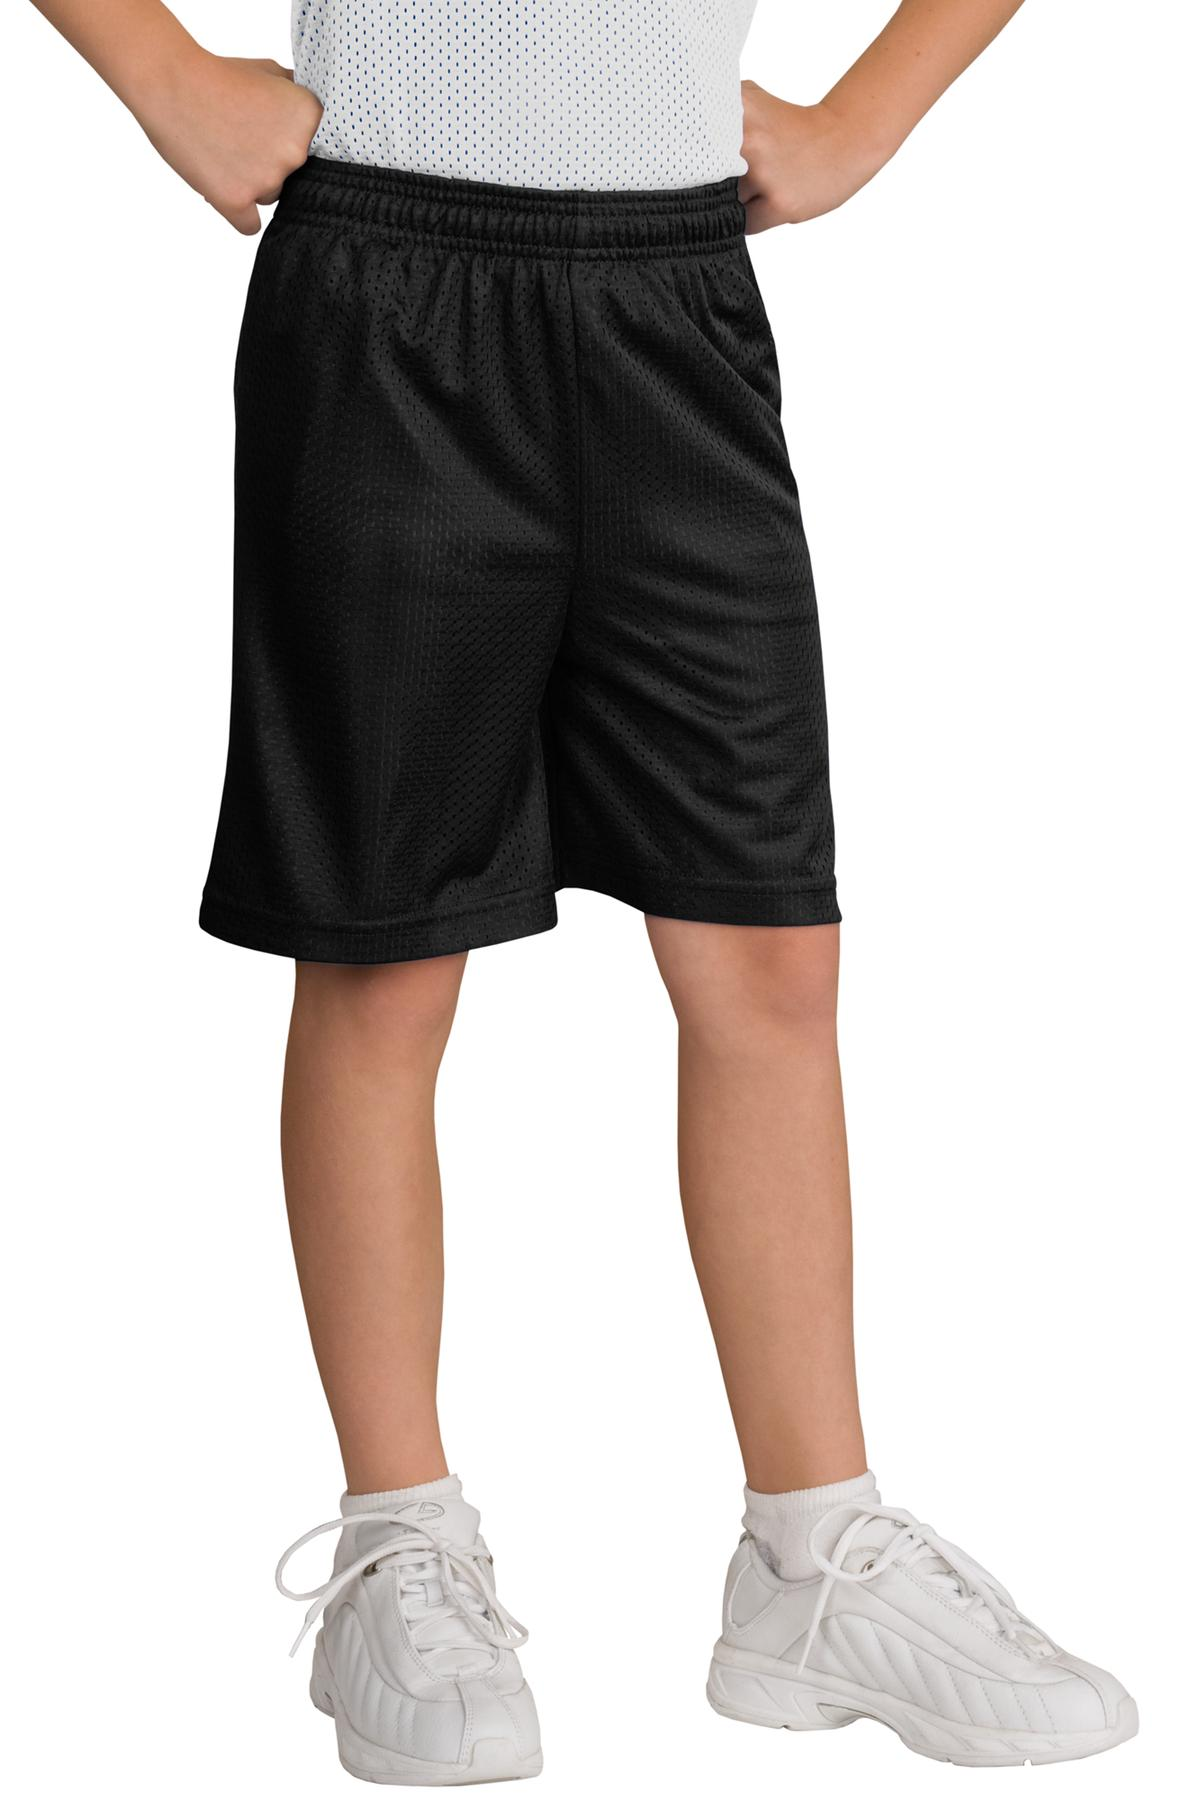 Sport-Tek ®  Youth PosiCharge ®  Classic Mesh Short. YST510